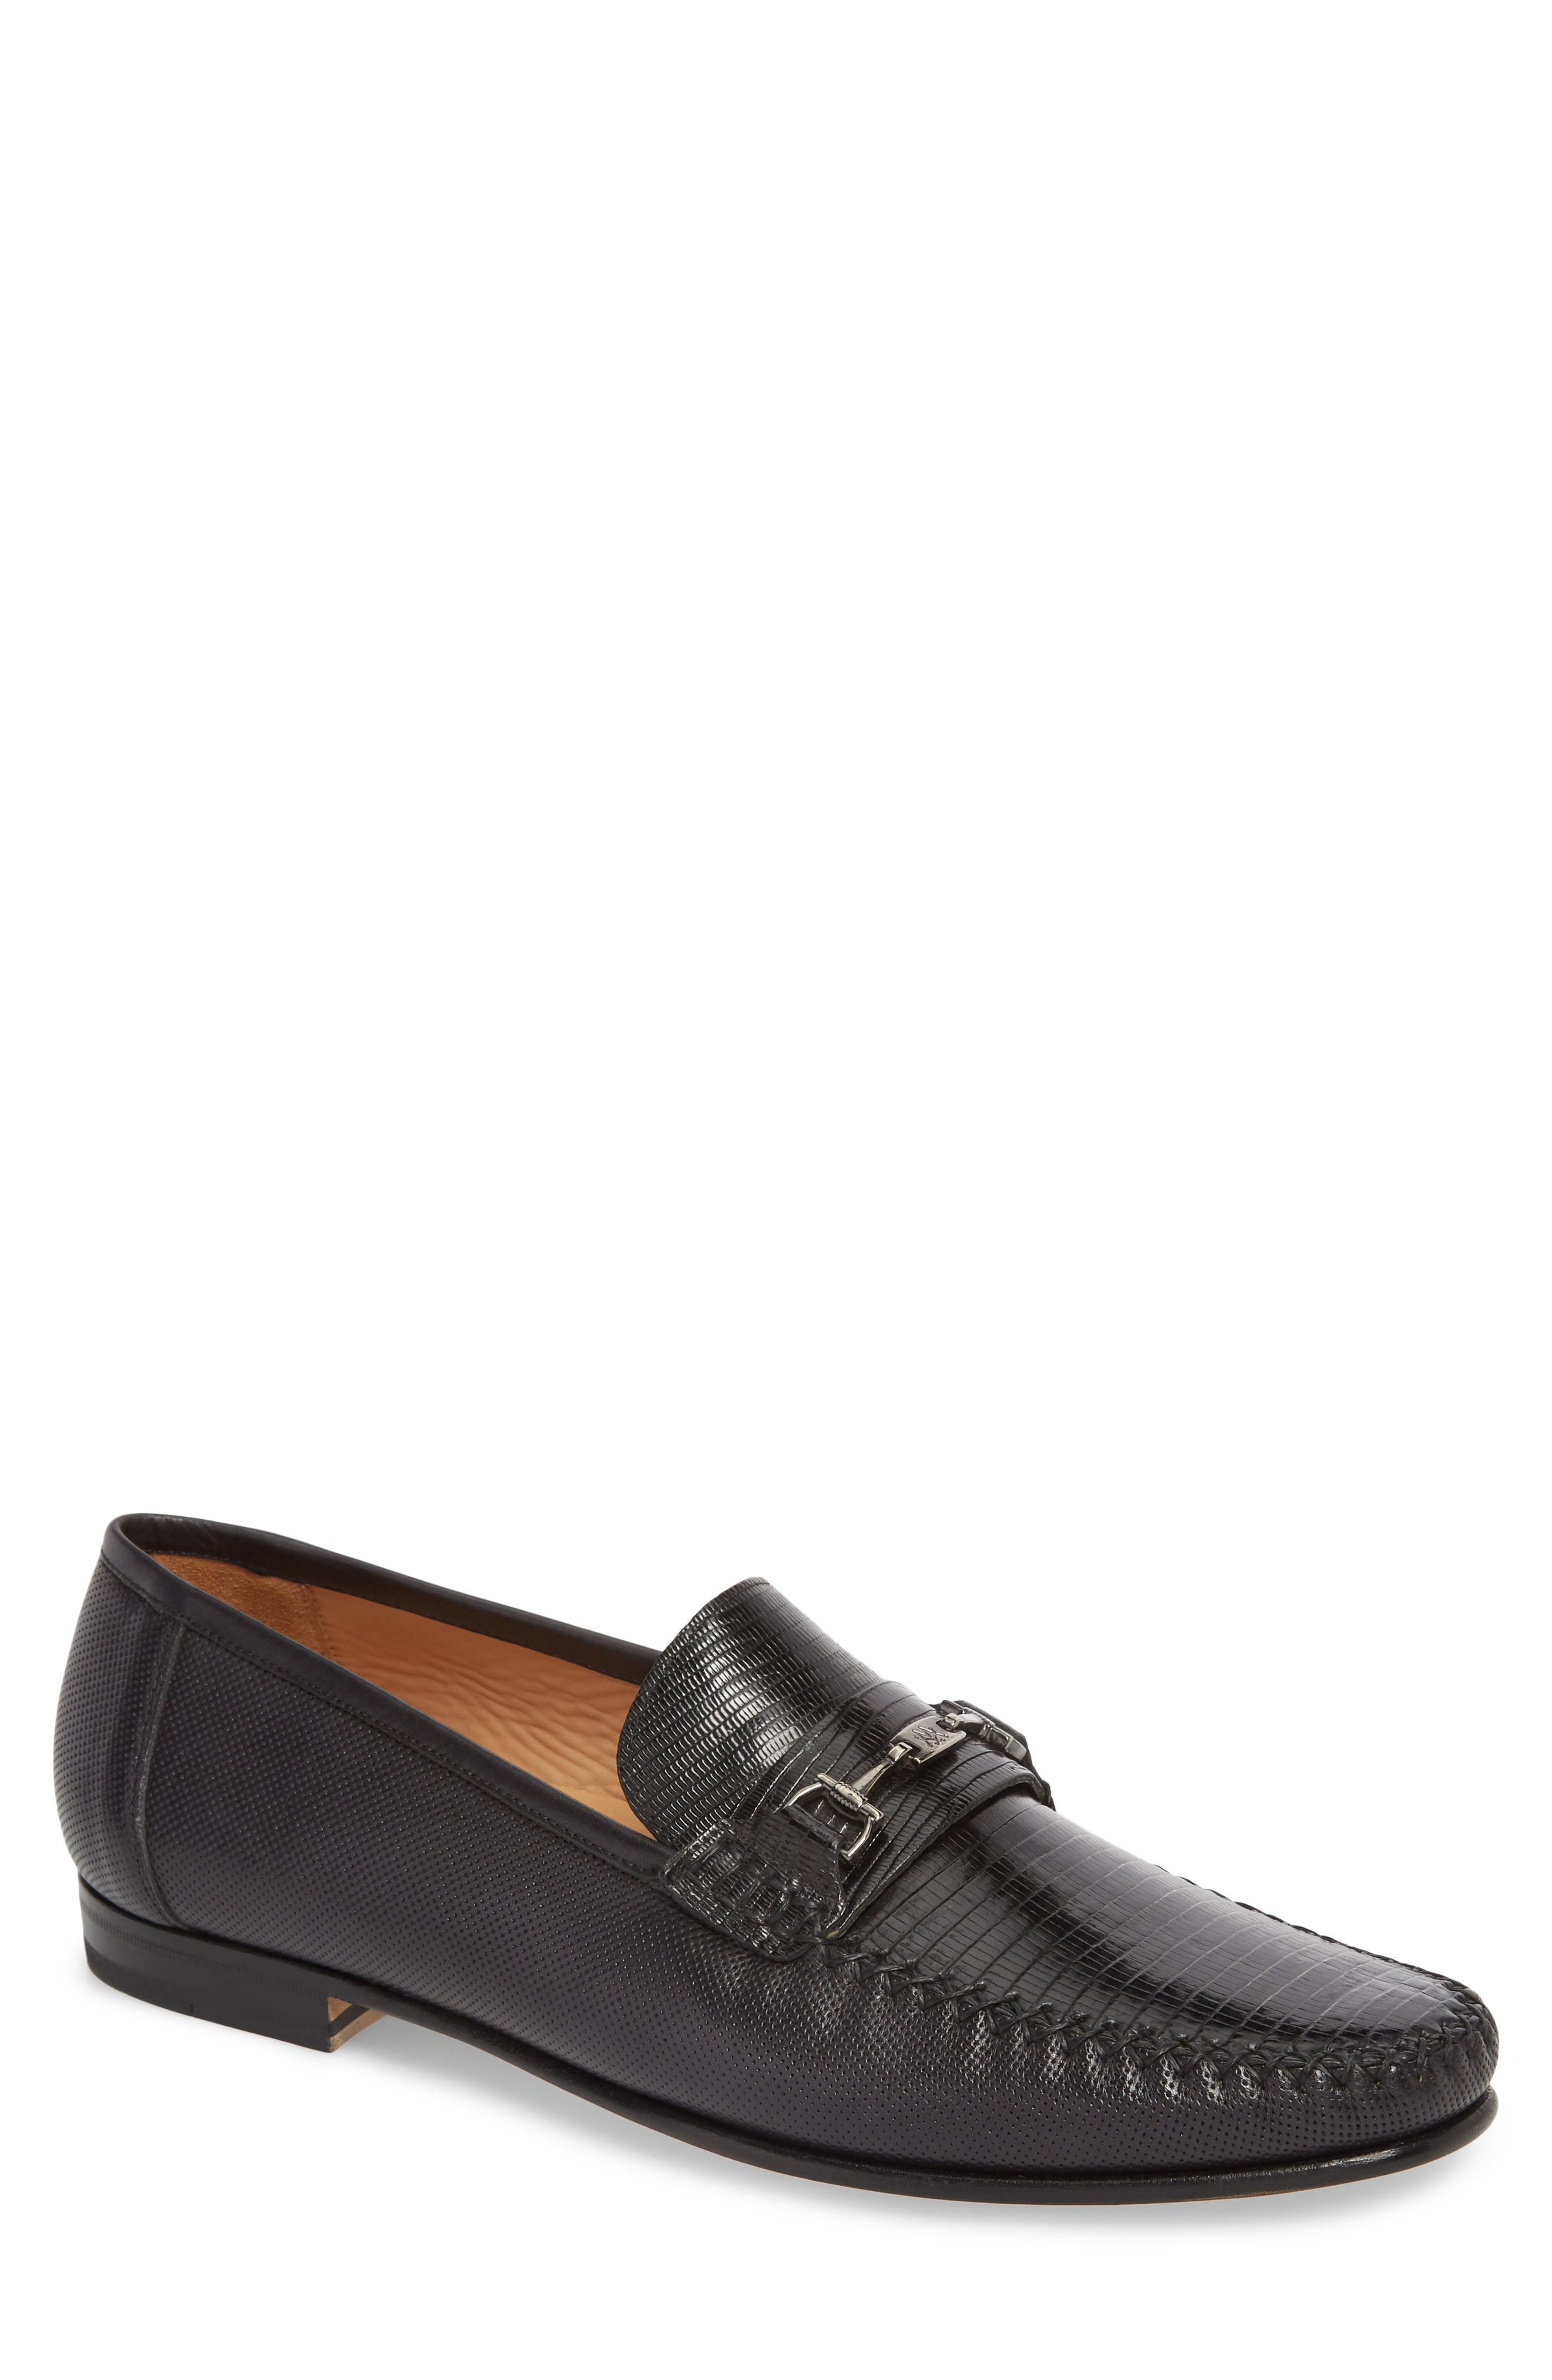 Sileno Lizard Loafer,                         Main,                         color, BLACK LEATHER